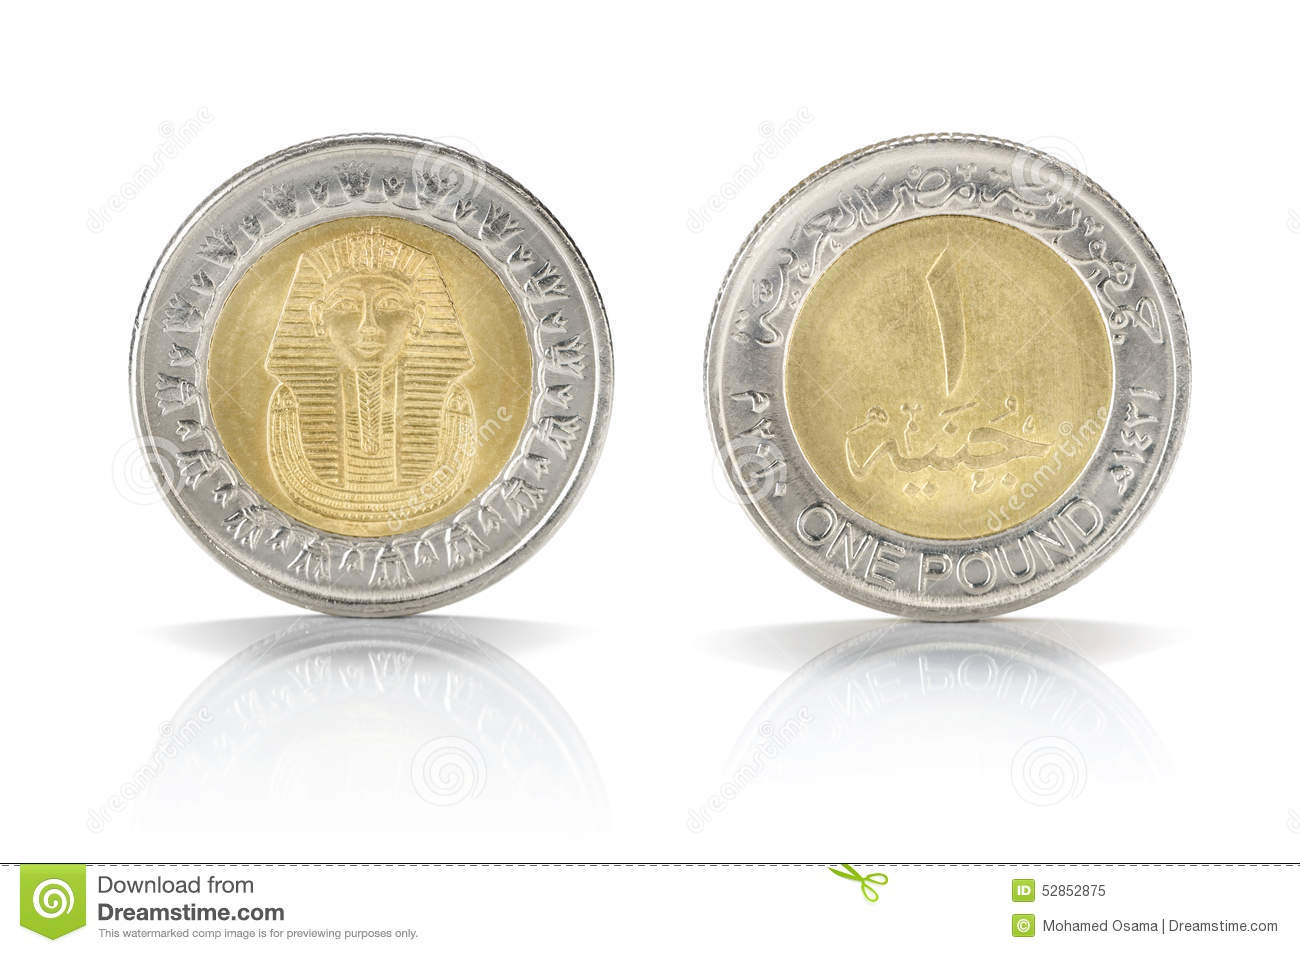 Egyptian pound stock images 245 photos one egyptian pound coin front and back sides of one egyptian pound coin isolated on biocorpaavc Images